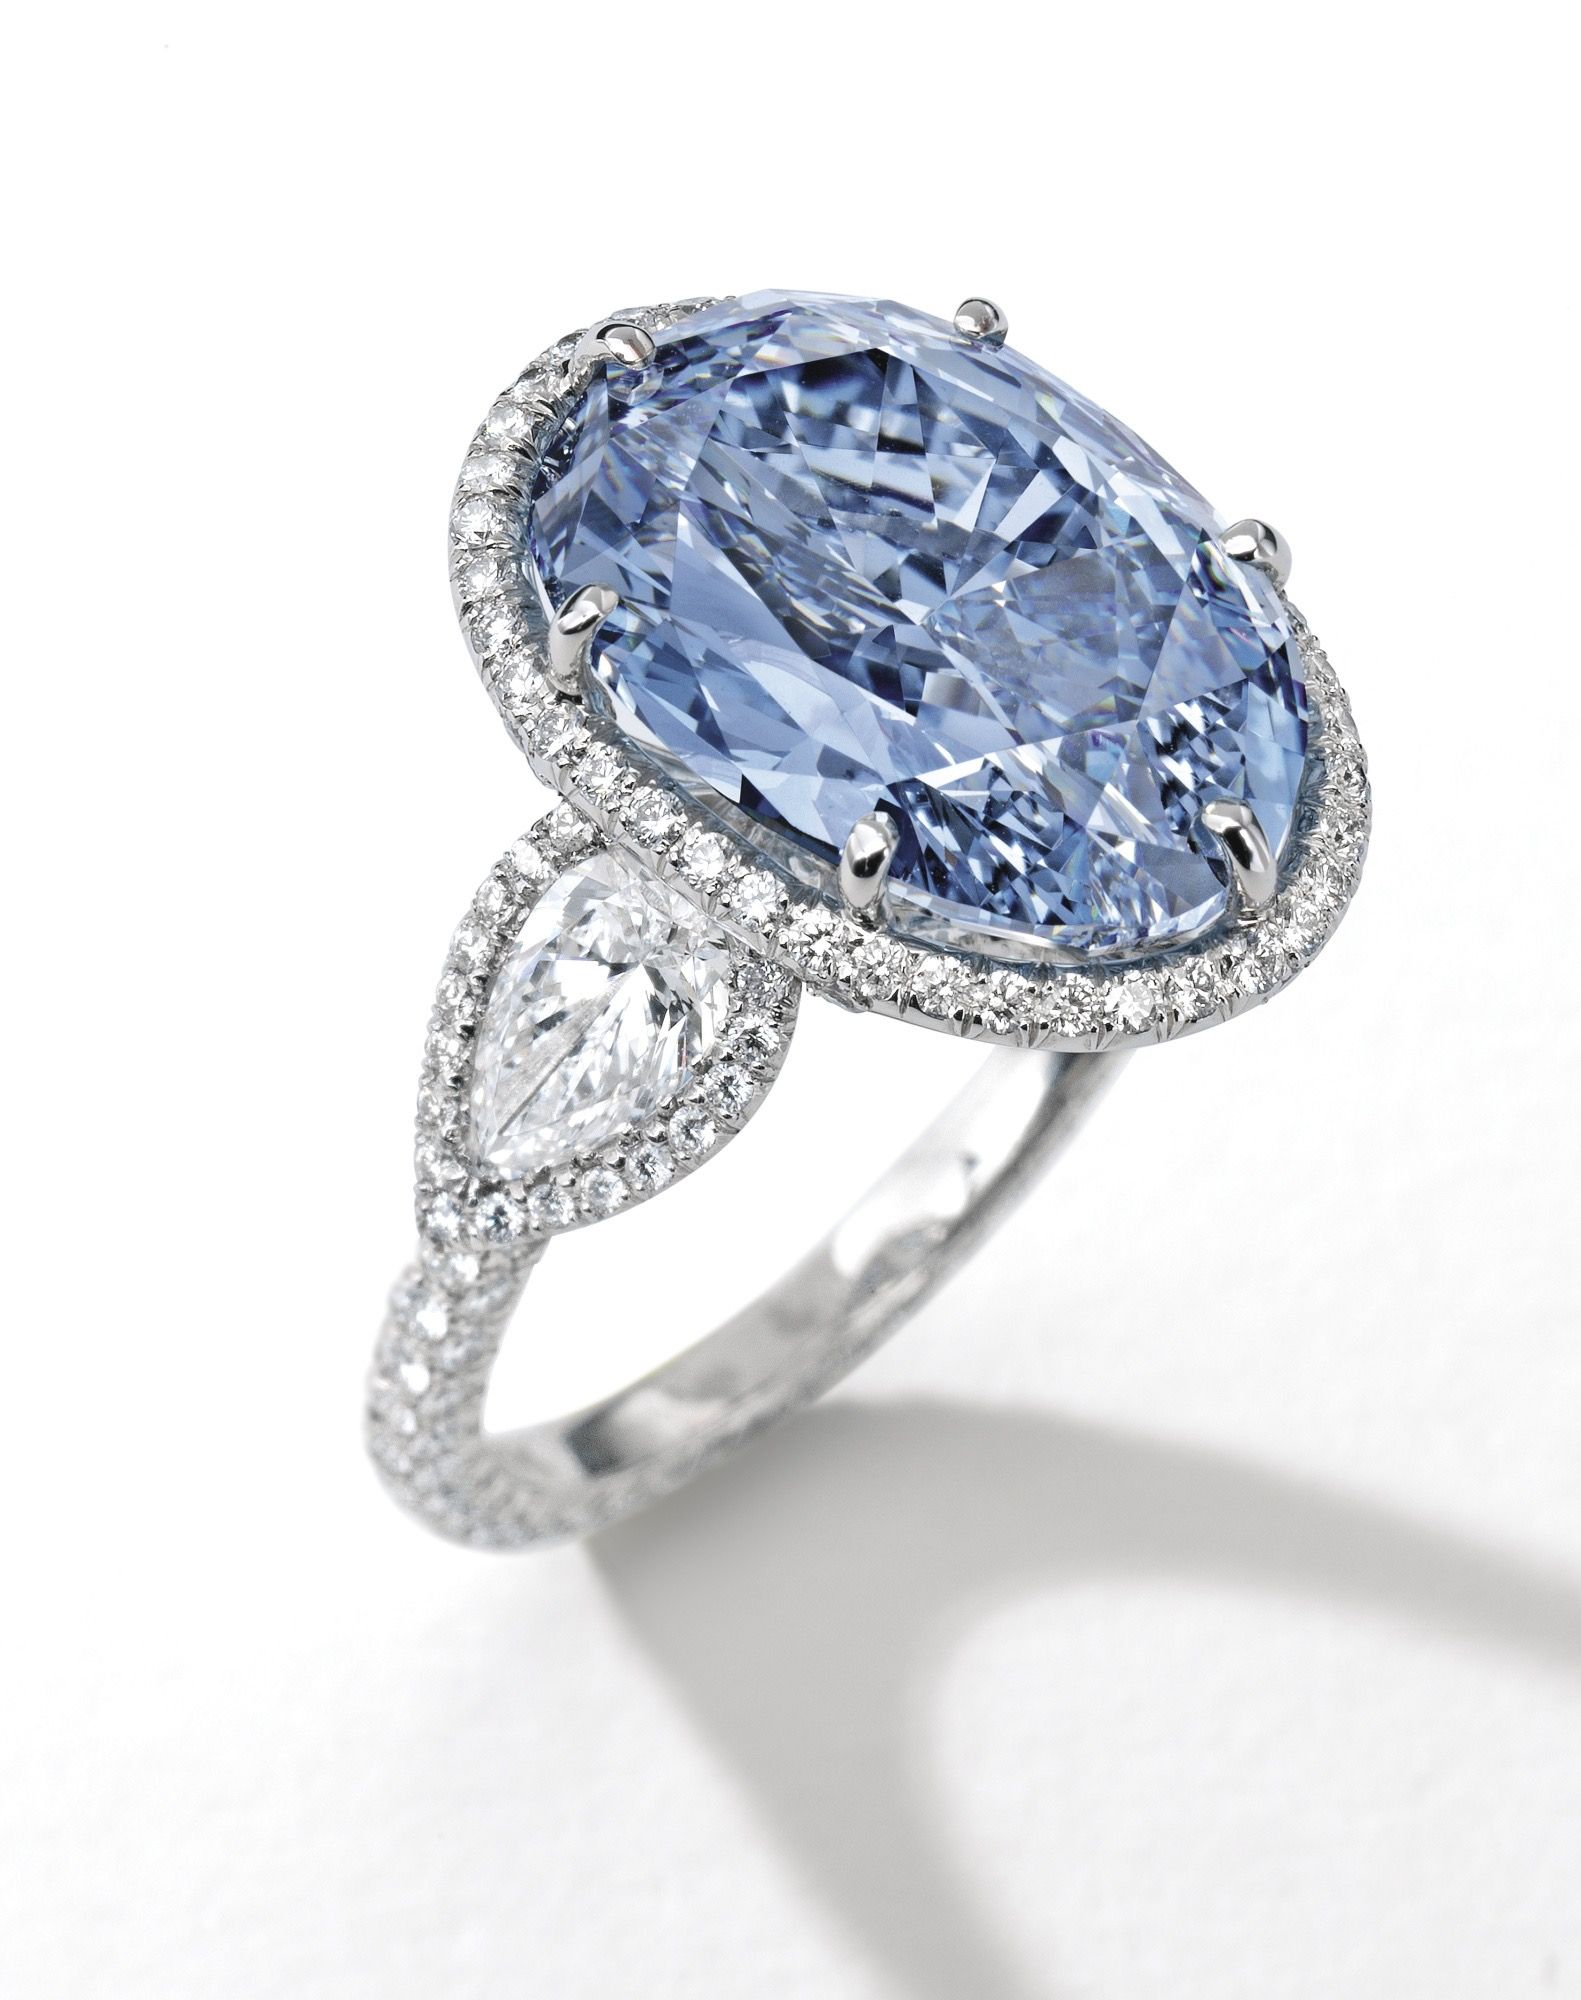 Smart 4.29 Ct Blue Topaz And Diamonds Ring 18k White Gold Natural With Certificate Sturdy Construction Engagement & Wedding Fine Jewelry Sets